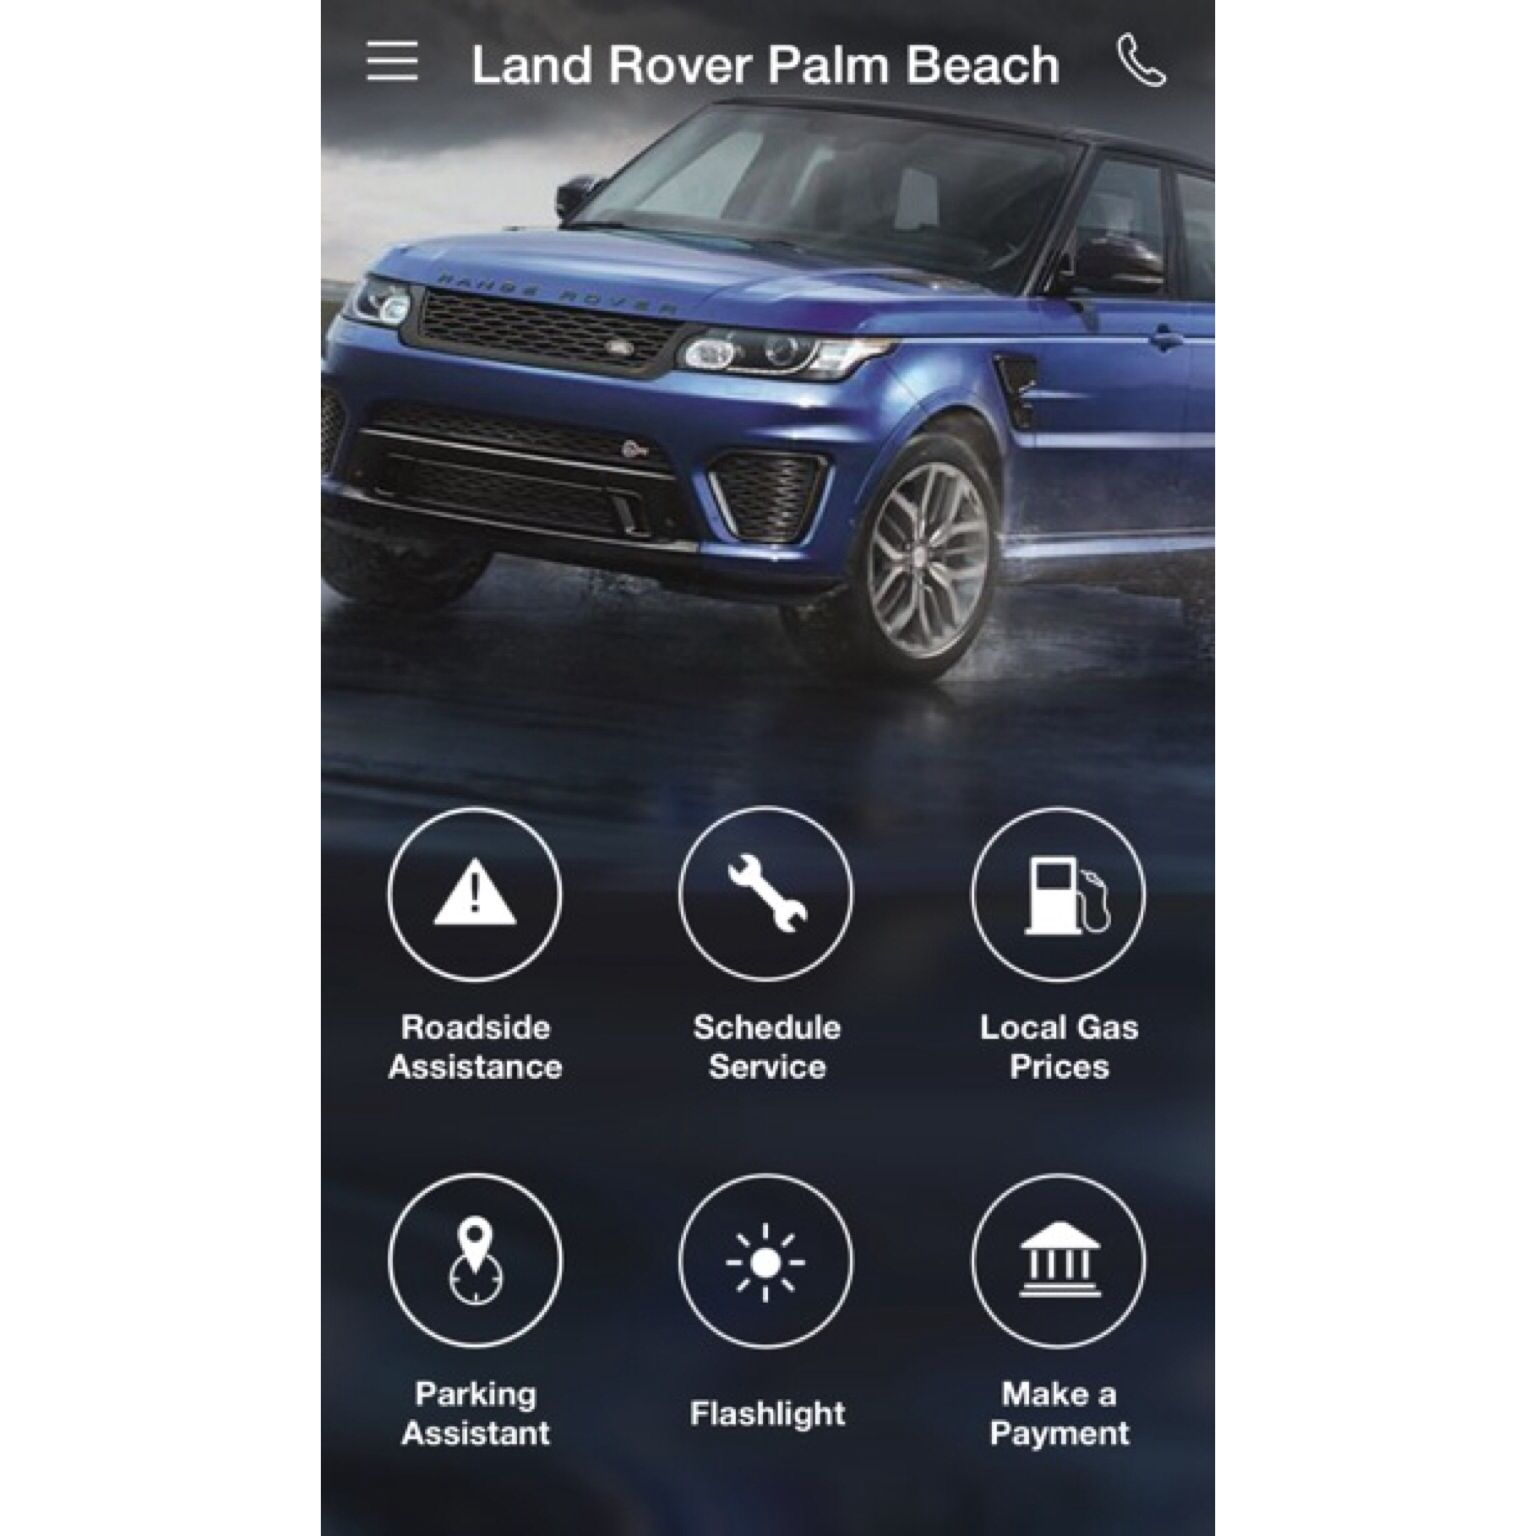 Have an iPhone or Android Check out our Free Land Rover Palm